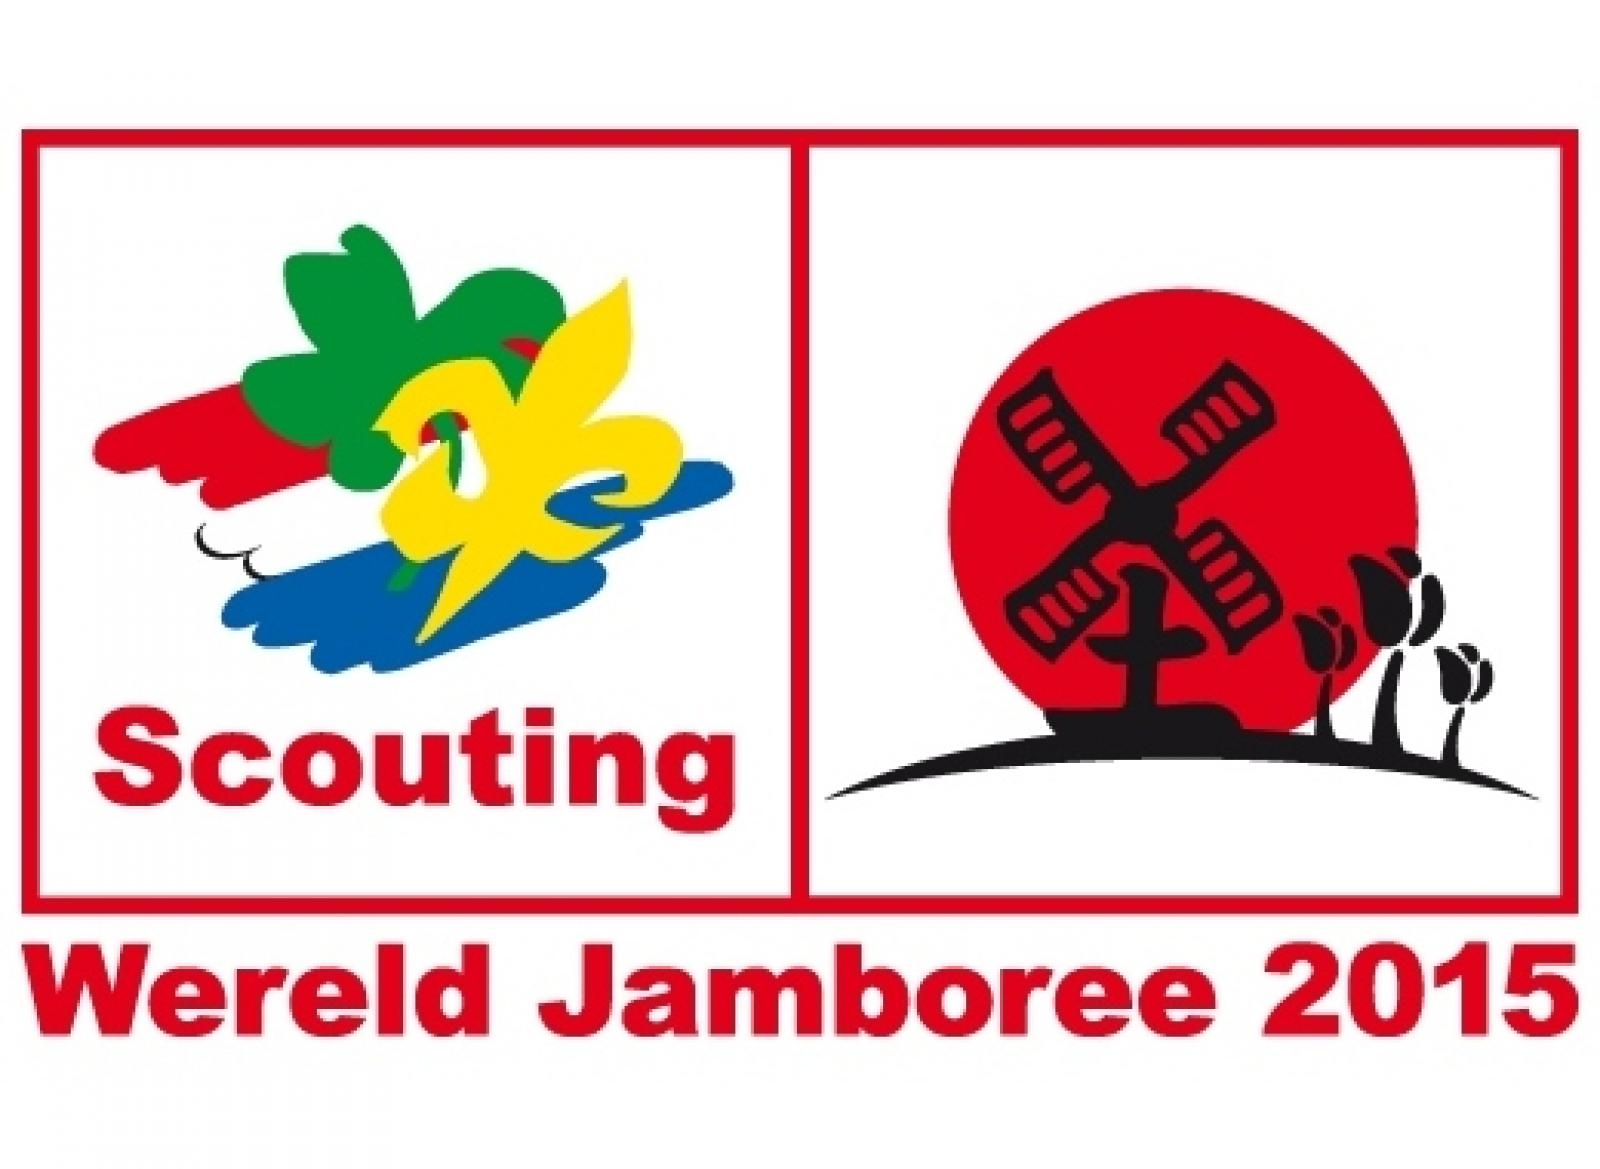 World Jamboree 2015 Japan